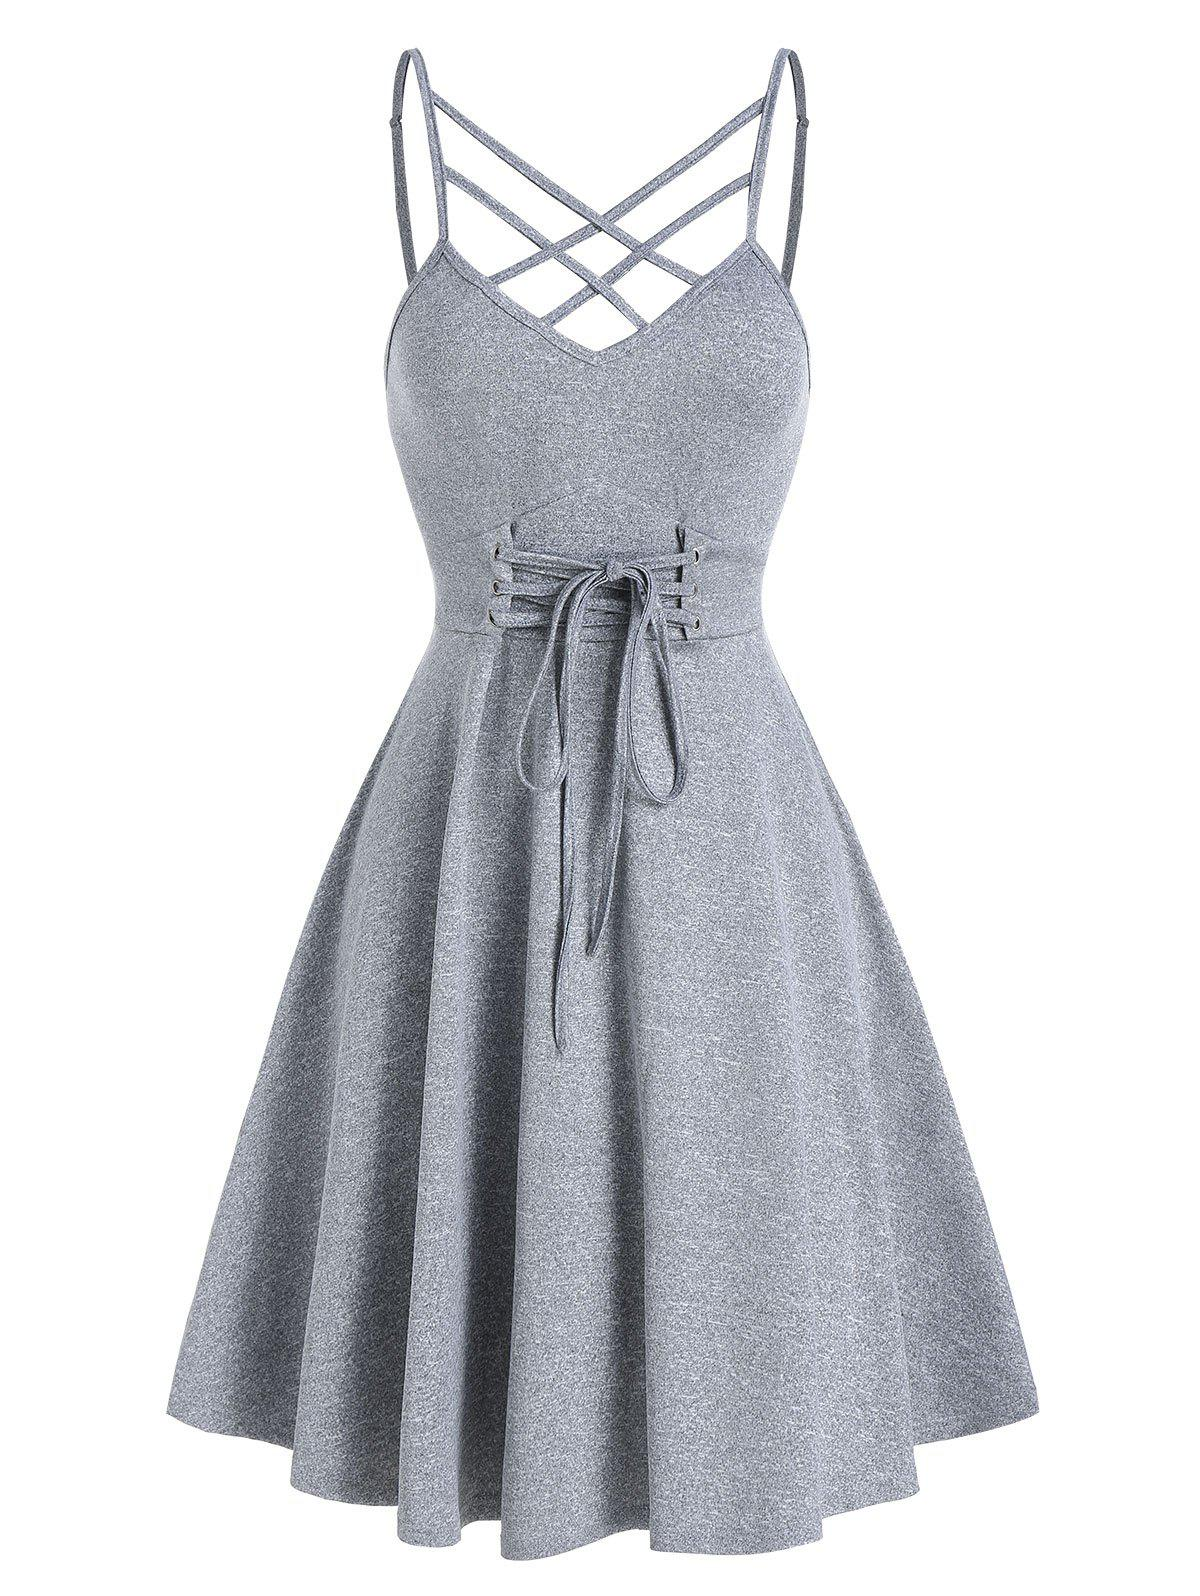 Front Strappy Lace Up Mini Cami Dress - GRAY CLOUD L